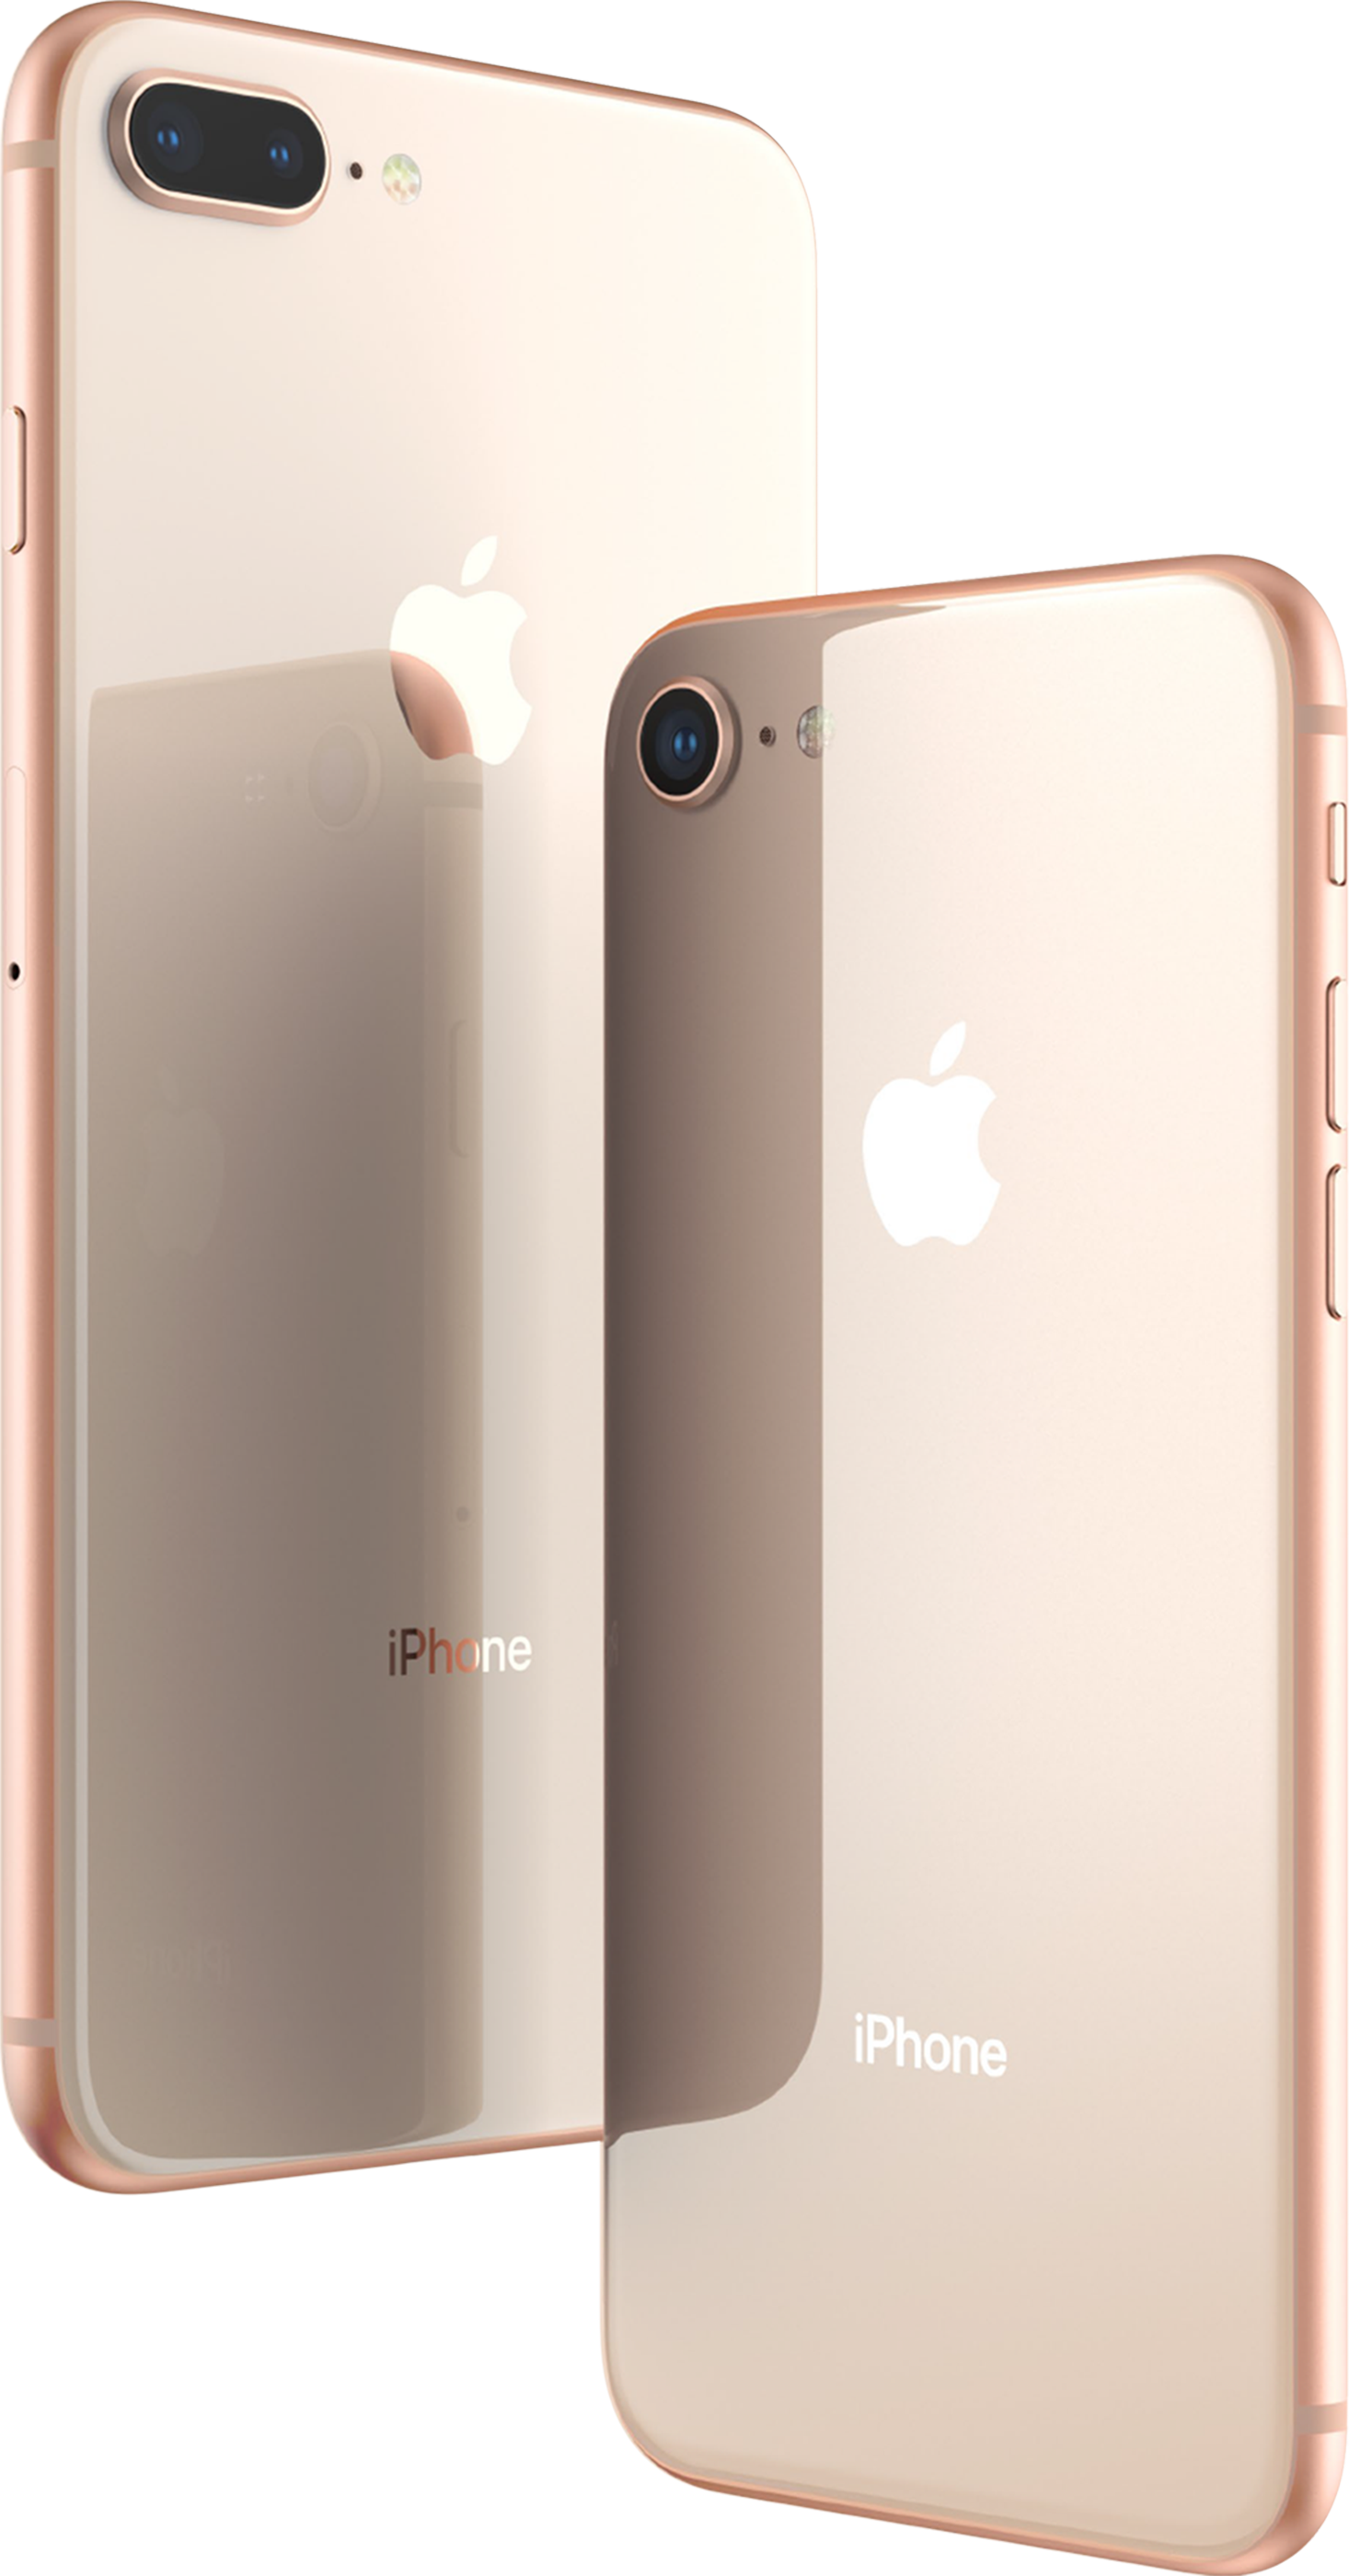 IPhone 8 Introduces An All New Glass Design The Worlds Most Popular Camera Now Even Better Smartest Powerful Chip Ever In A Smartphone